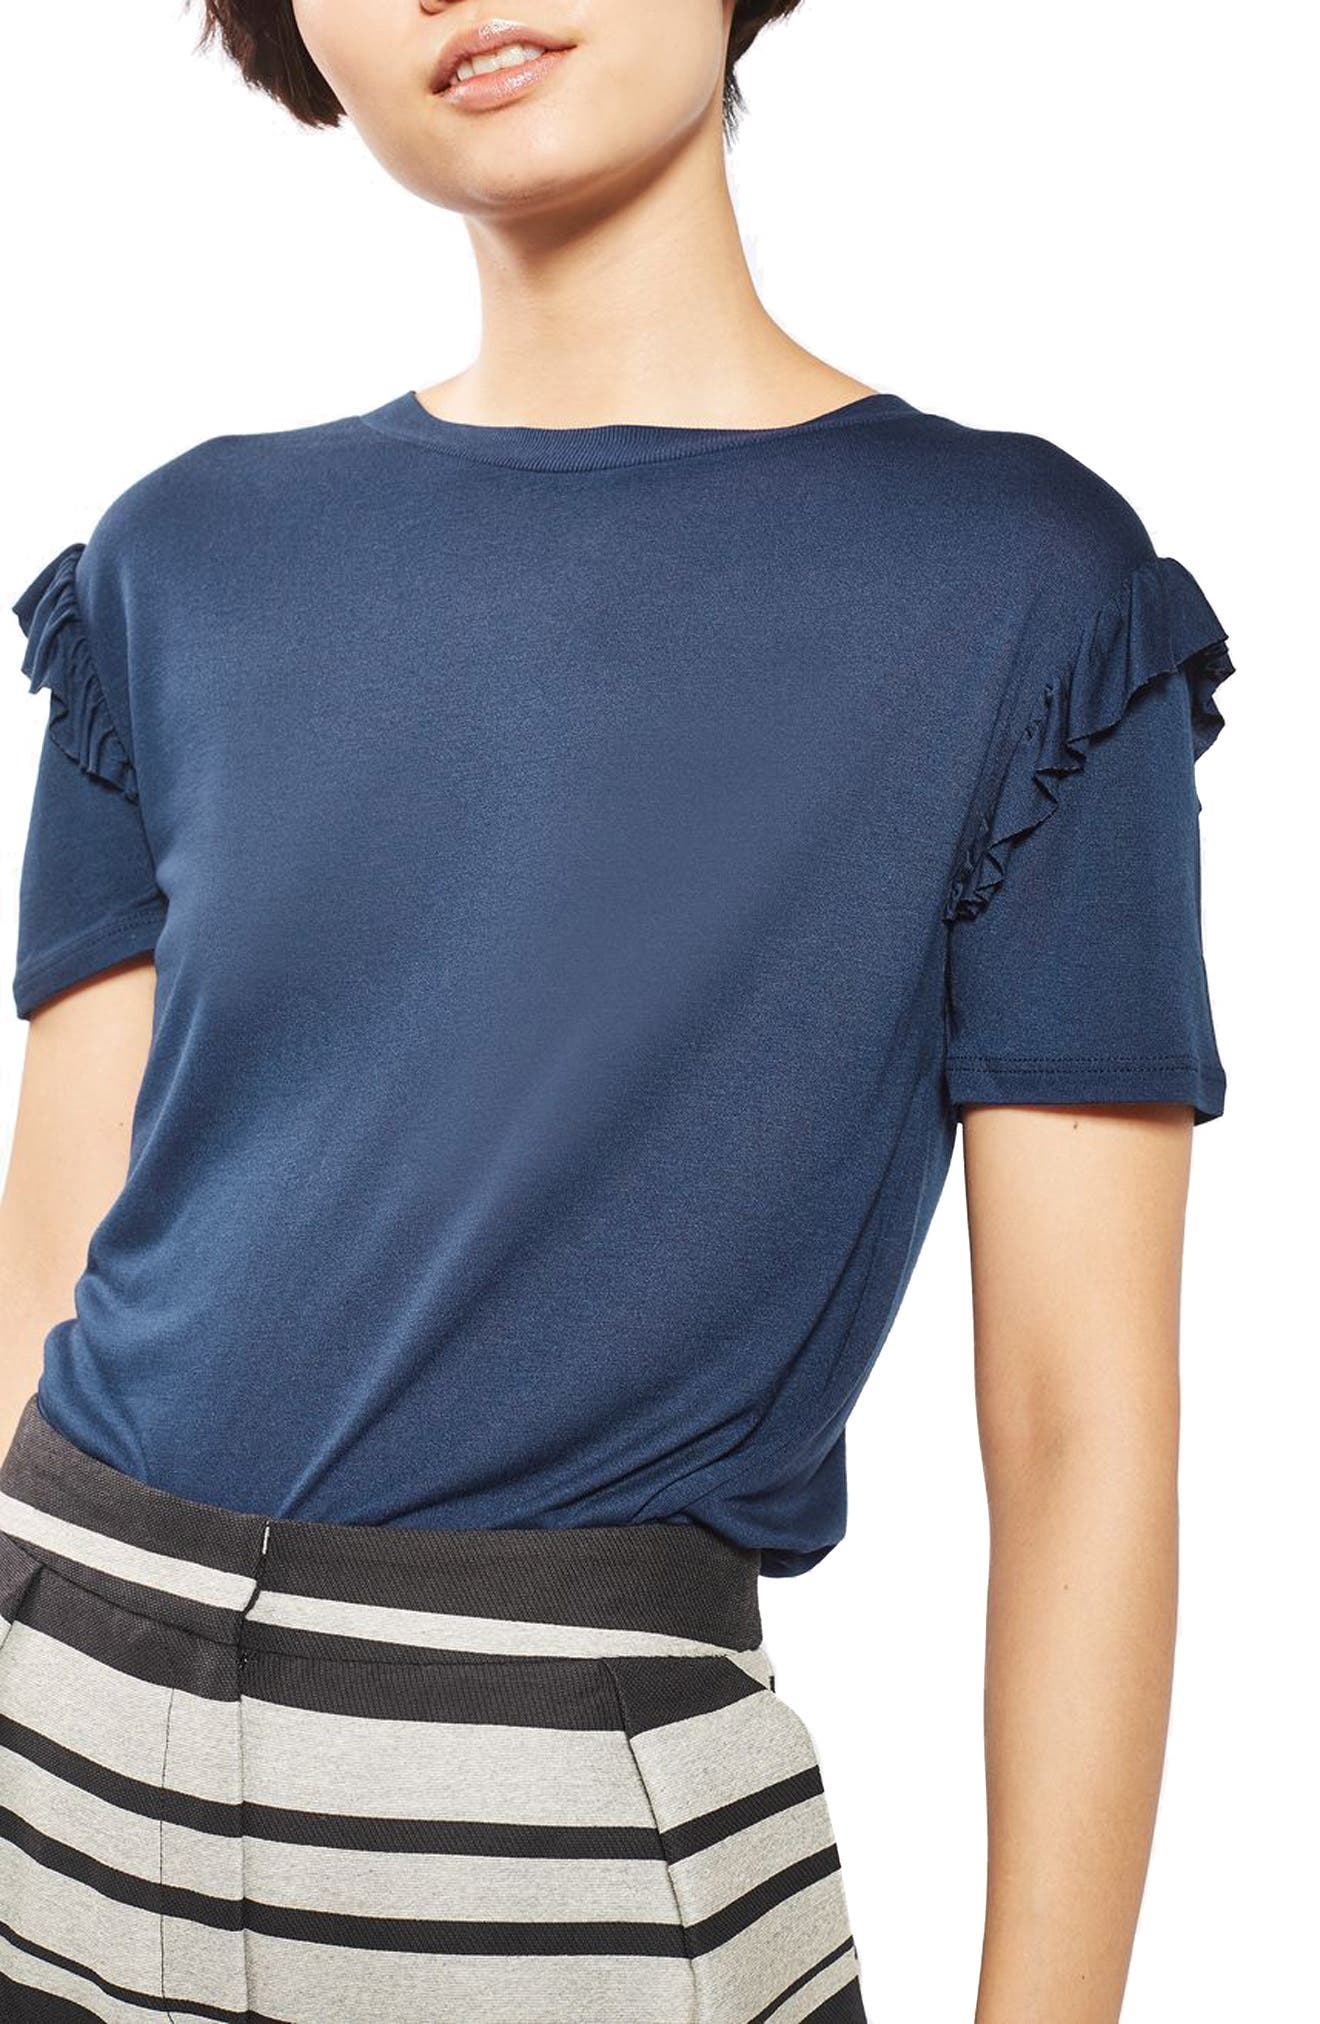 Alternate Image 1 Selected - Topshop Frill Sleeve Tee